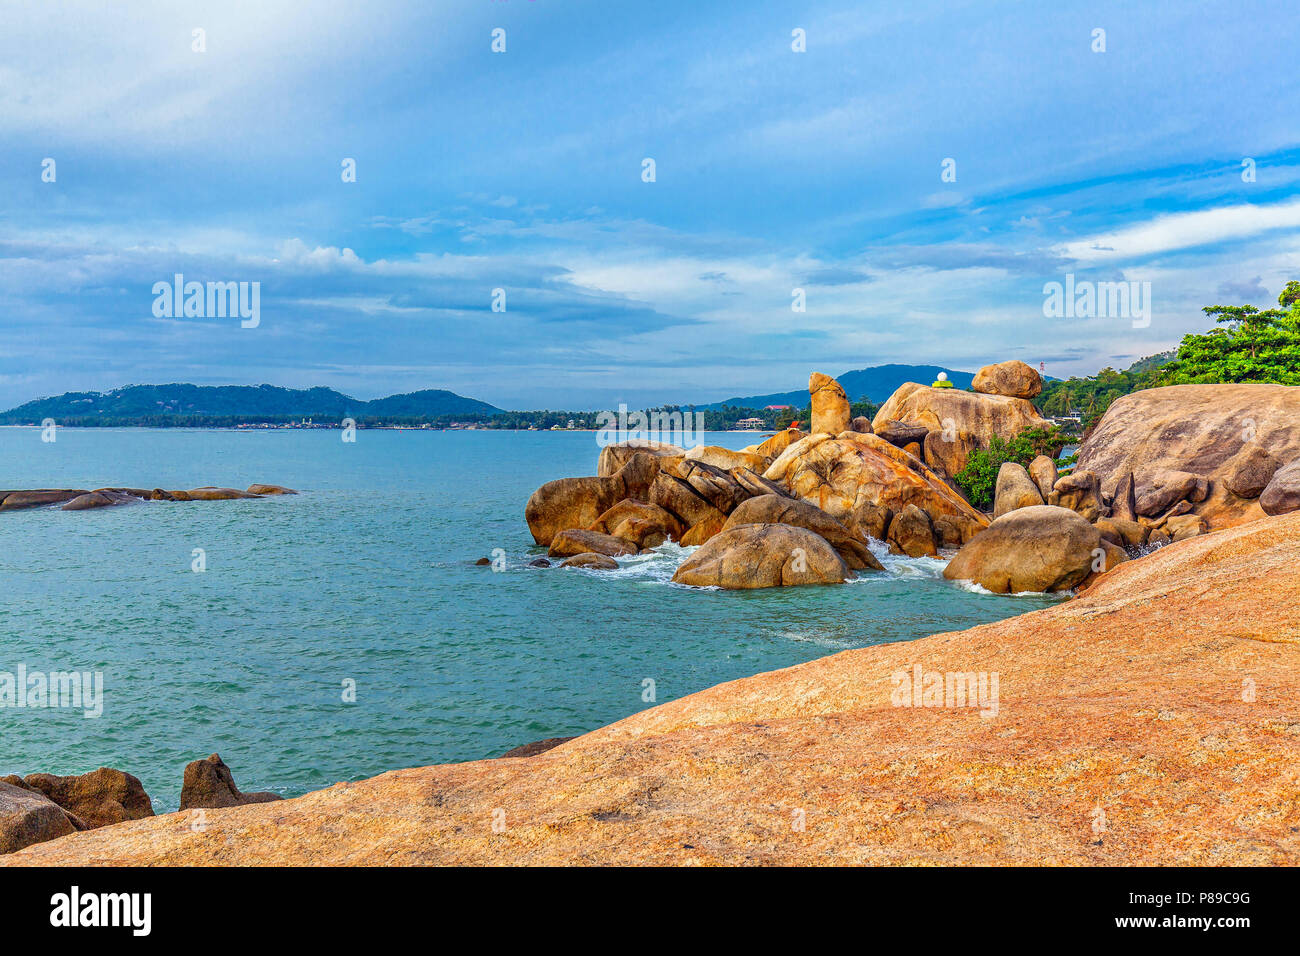 Hin Ta and Hin Yai Rocks. A famous place on the island of Koh Samui in Thailand. Stock Photo